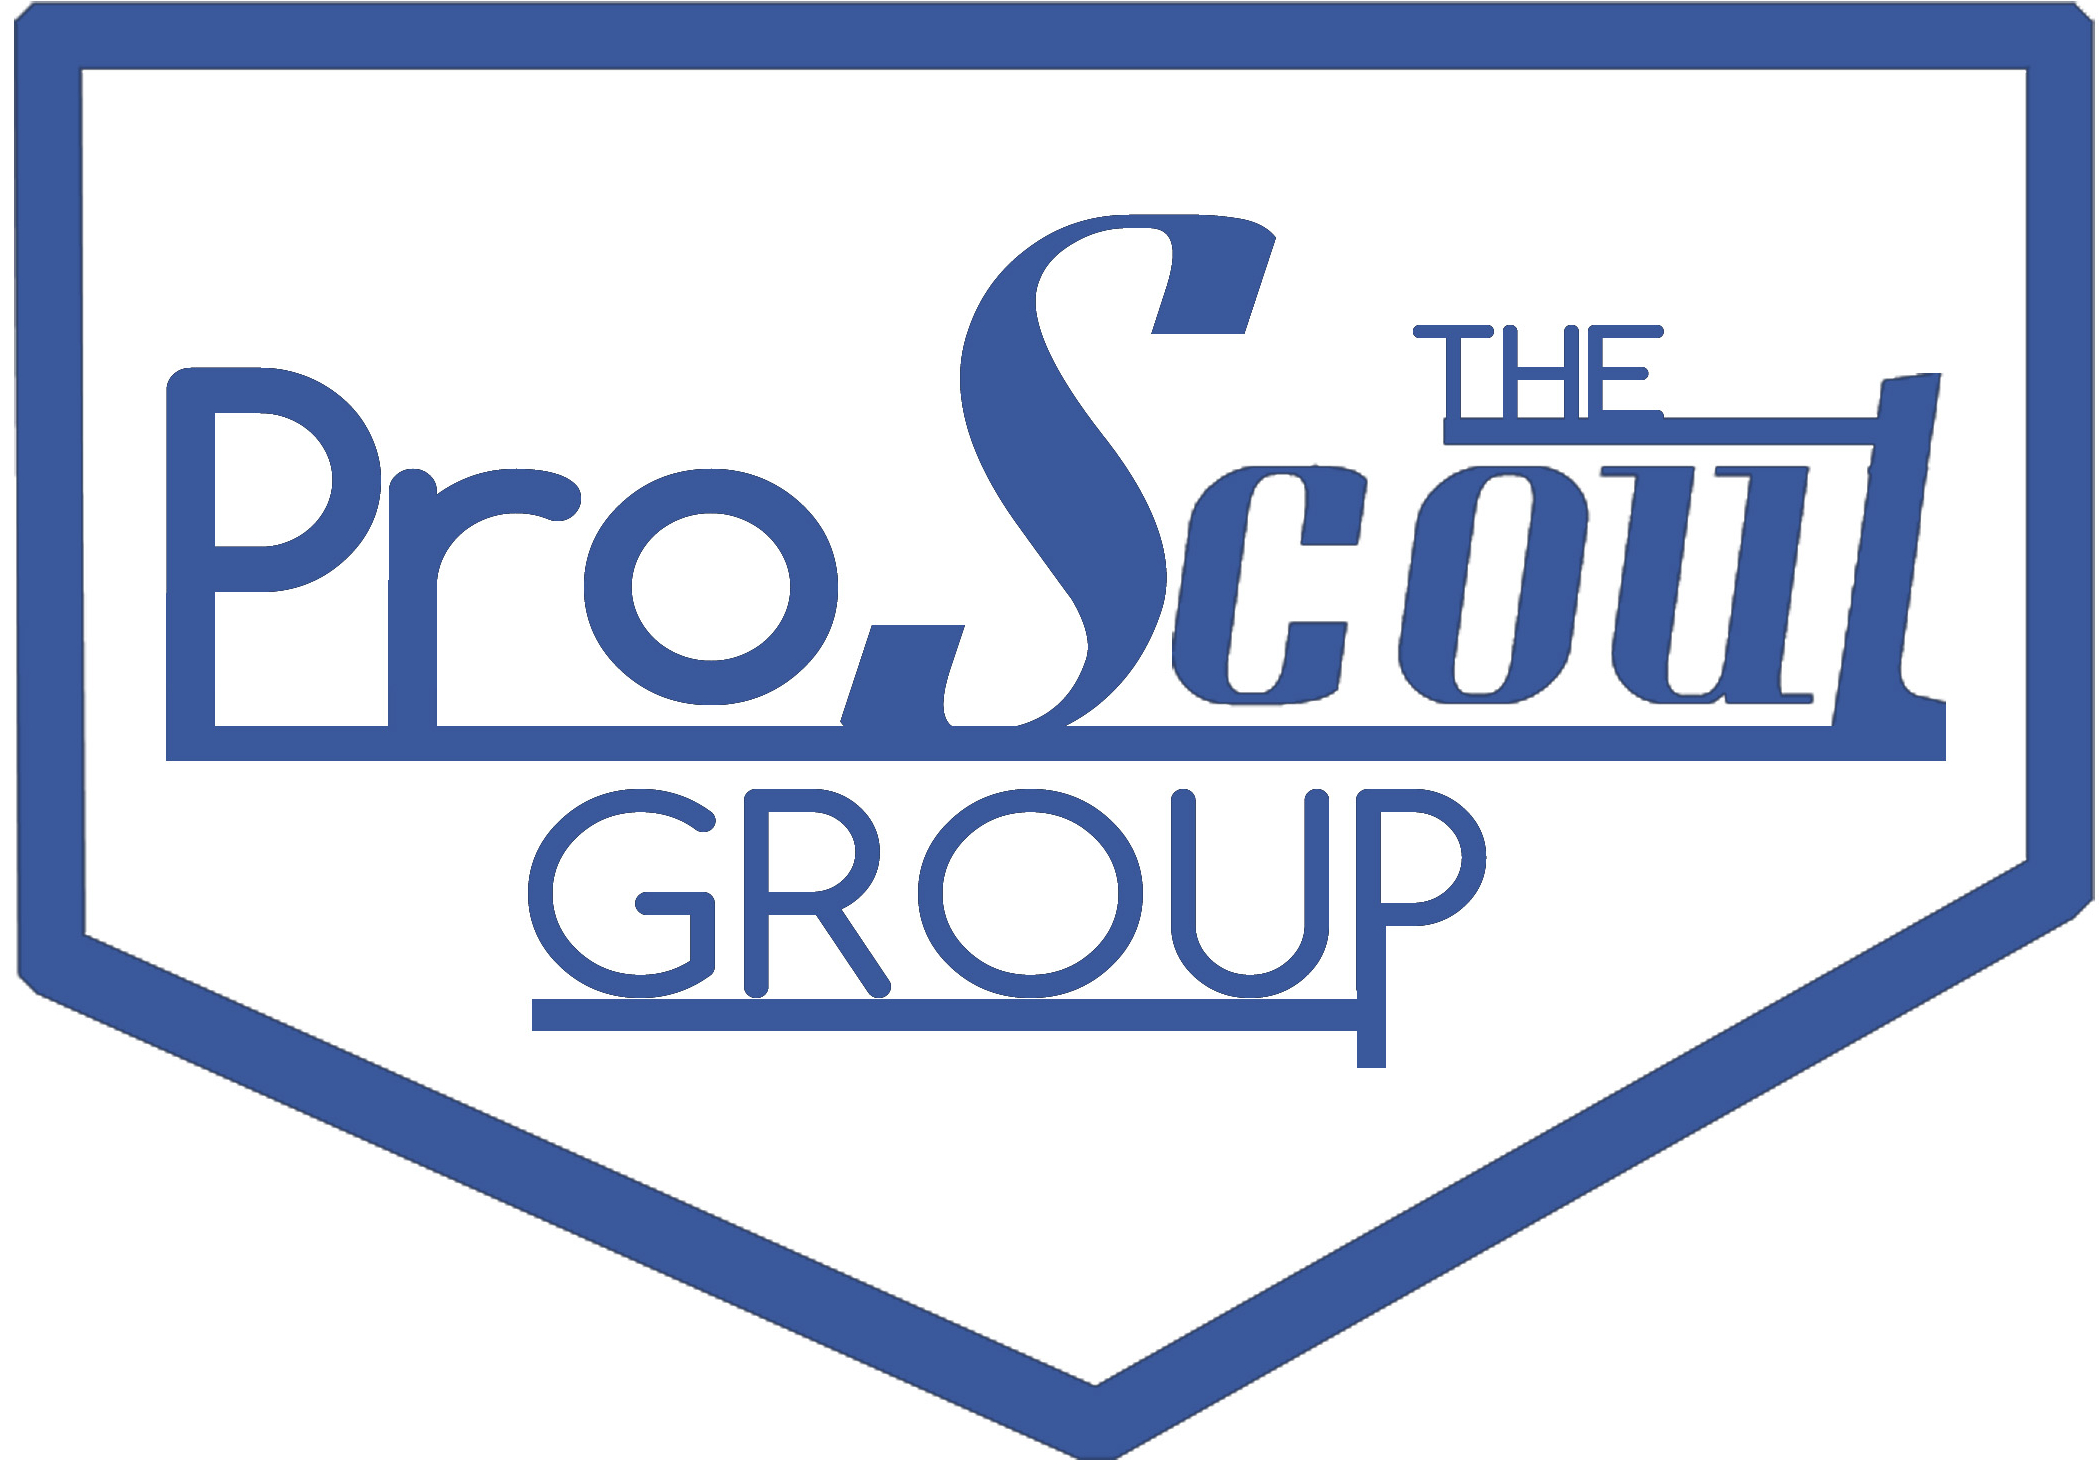 The Pro Scout Group